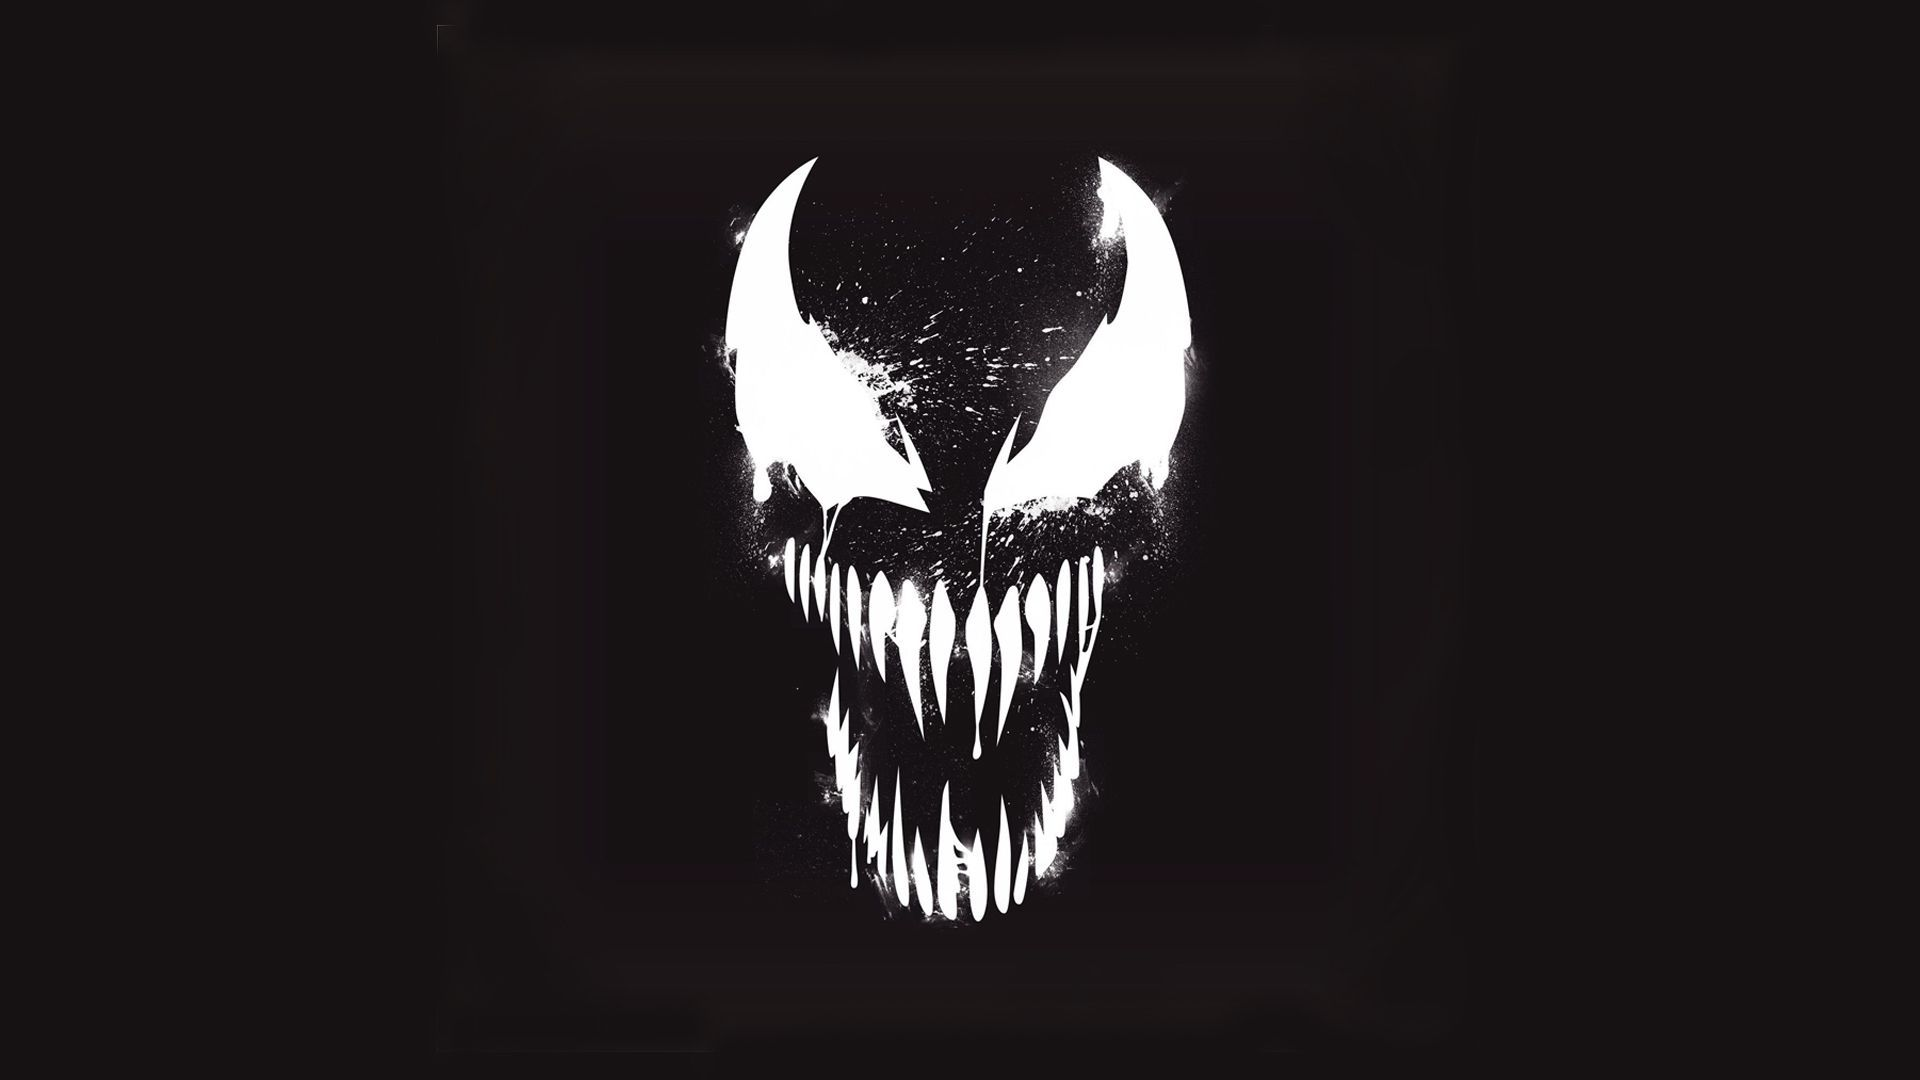 1920x1080 Venom Marvel Artistic Logo With Dark Background Hd Wallpapers Background Hd Wallpaper Marvel Comics Wallpaper Dark Backgrounds